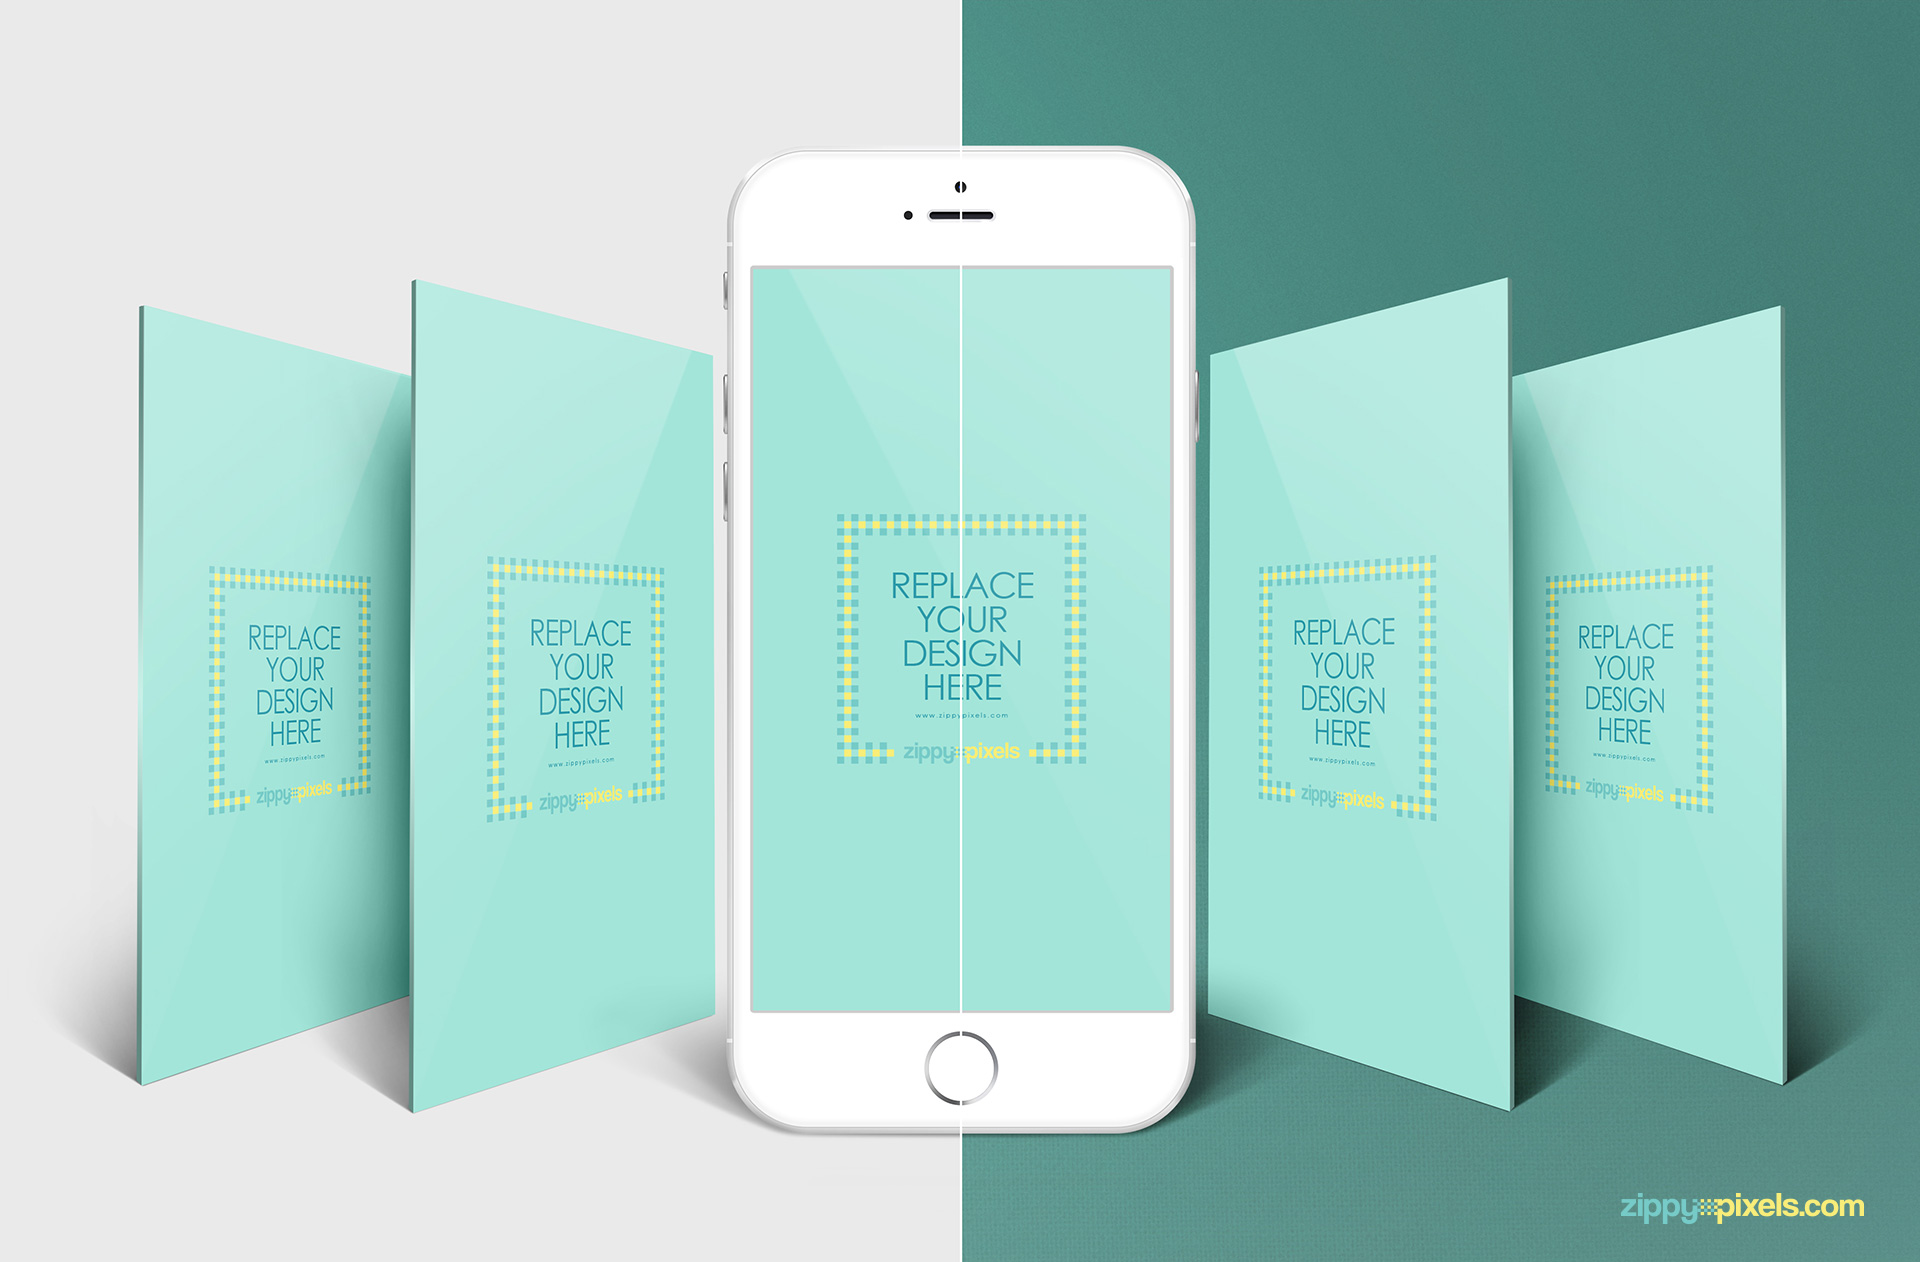 iphone perspective mockup app screen mockups zippypixels. Black Bedroom Furniture Sets. Home Design Ideas